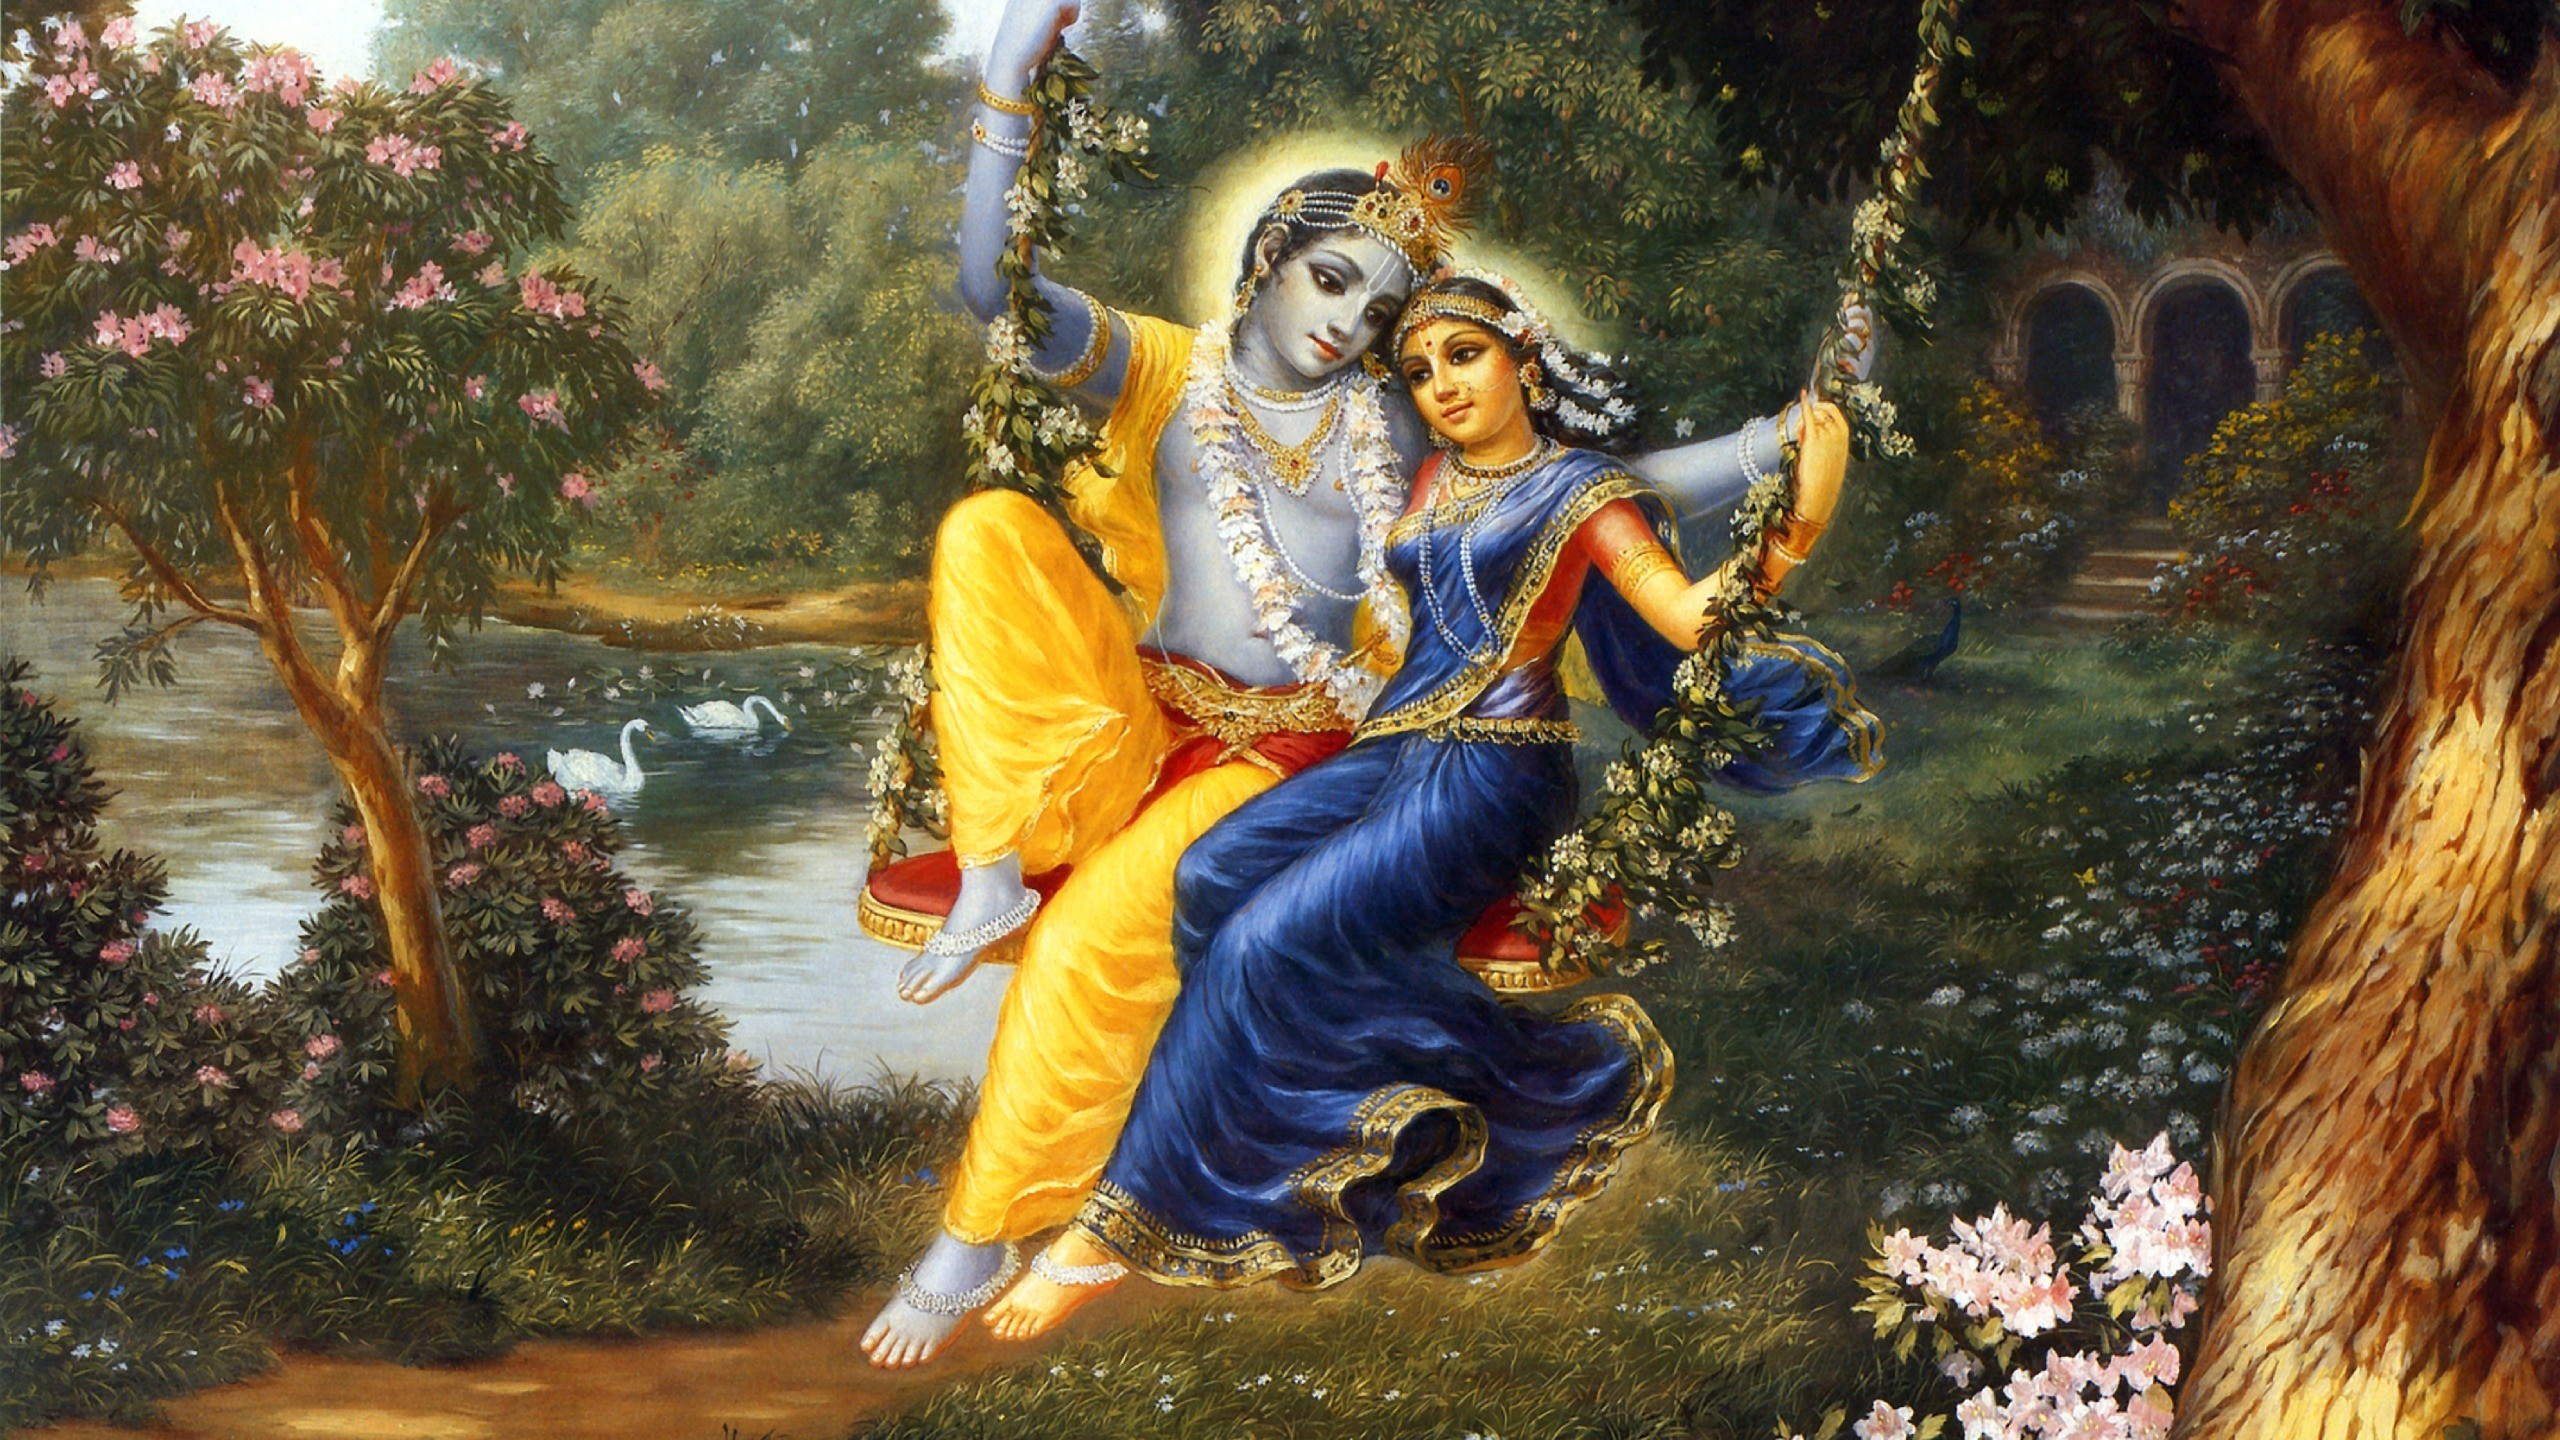 Radha Krishna Wallpaper: Desktop HD Wallpaper - Download